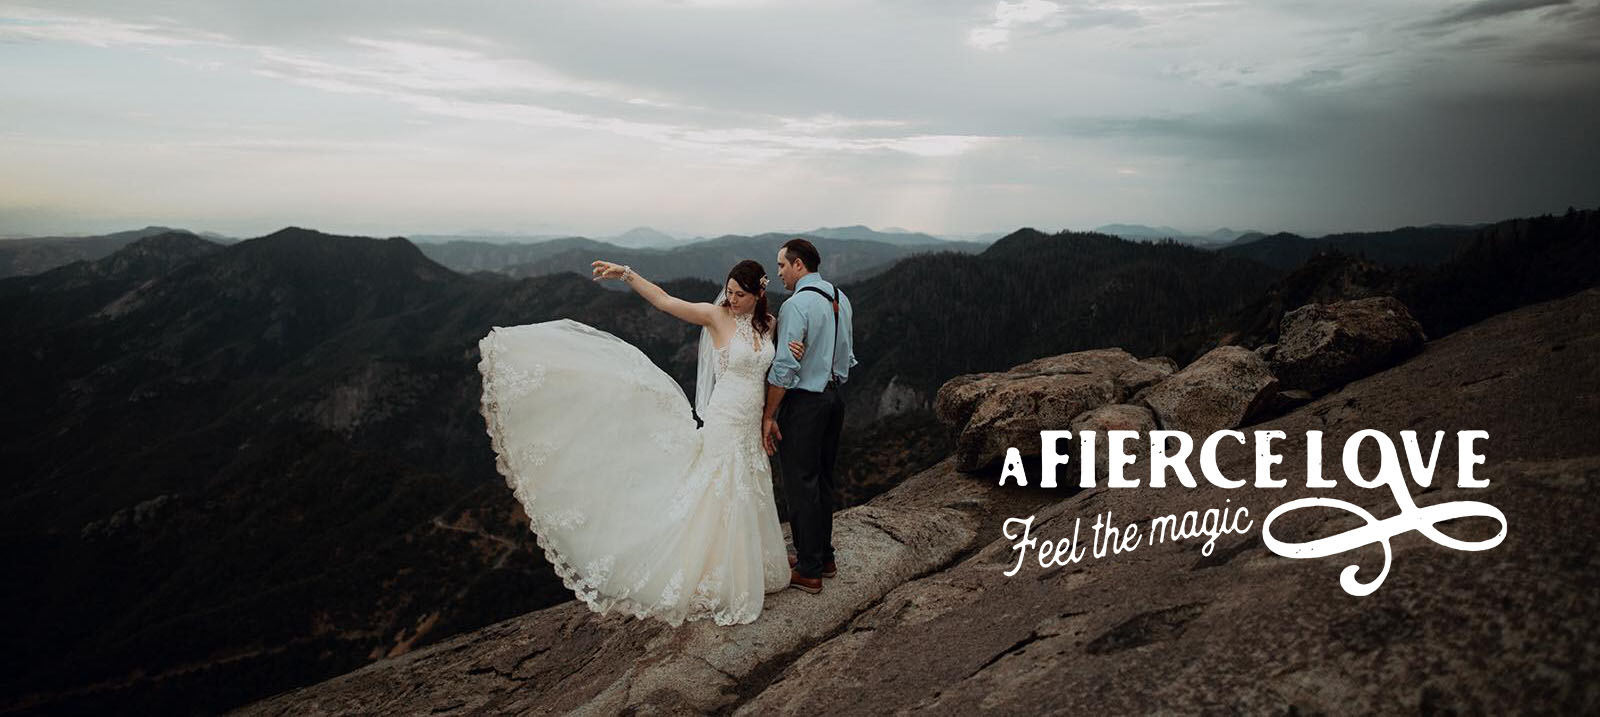 Sequoia Weddings - proudly brought to you by A Fierce Love